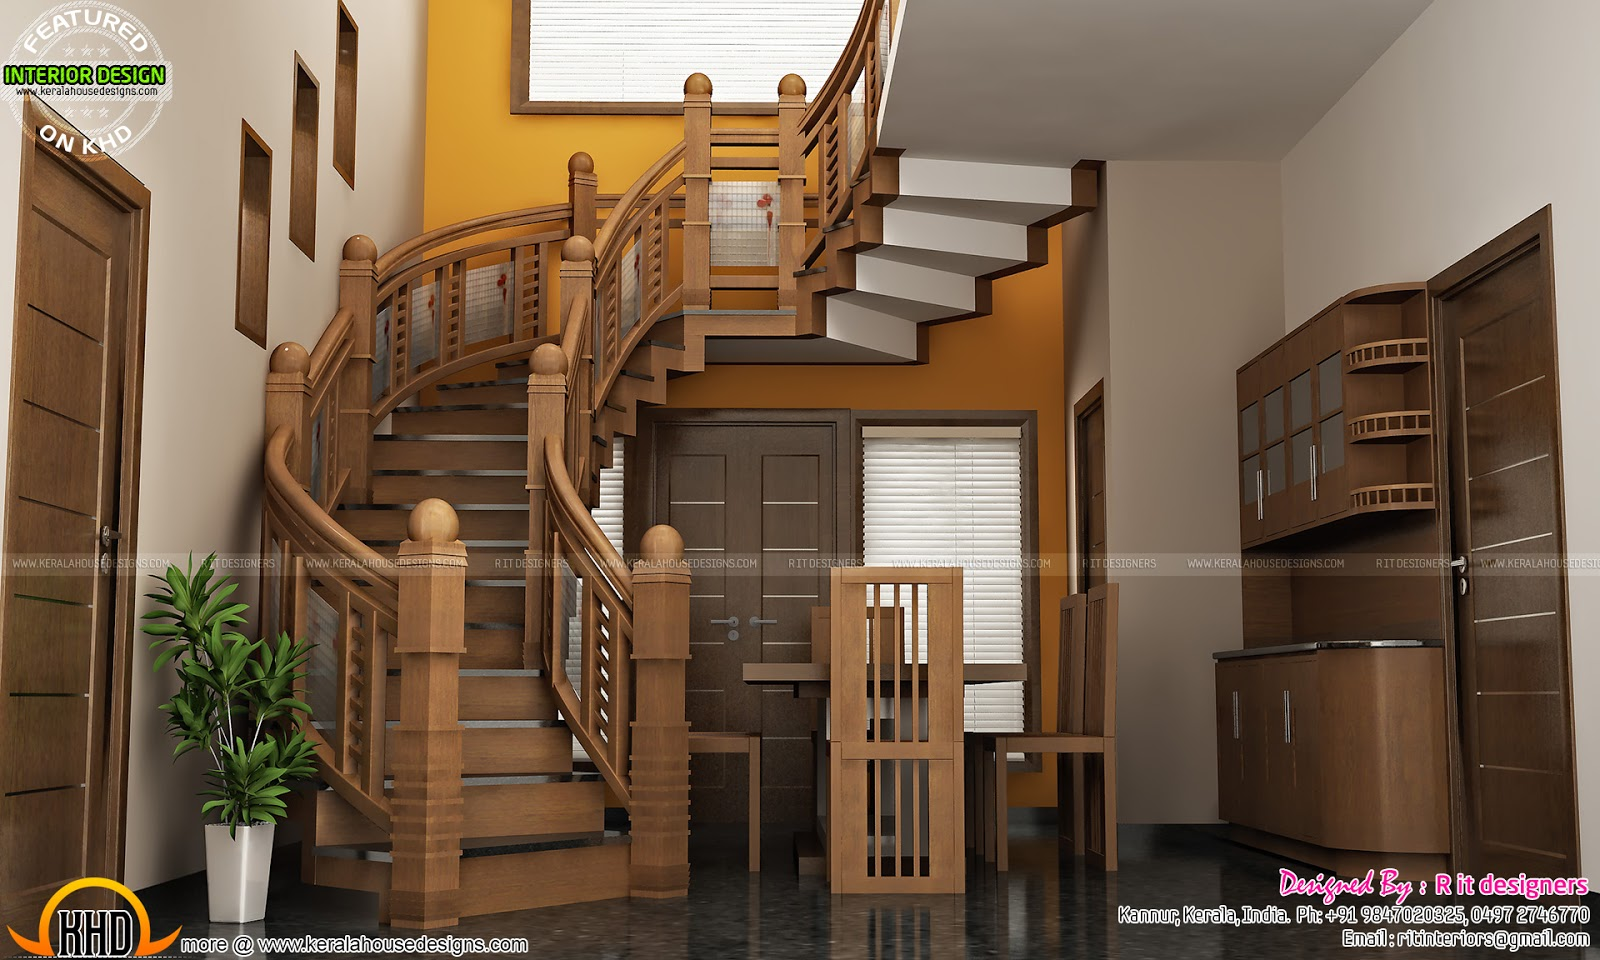 under stair design wooden stair kitchen and living kerala home design and floor plans. Black Bedroom Furniture Sets. Home Design Ideas